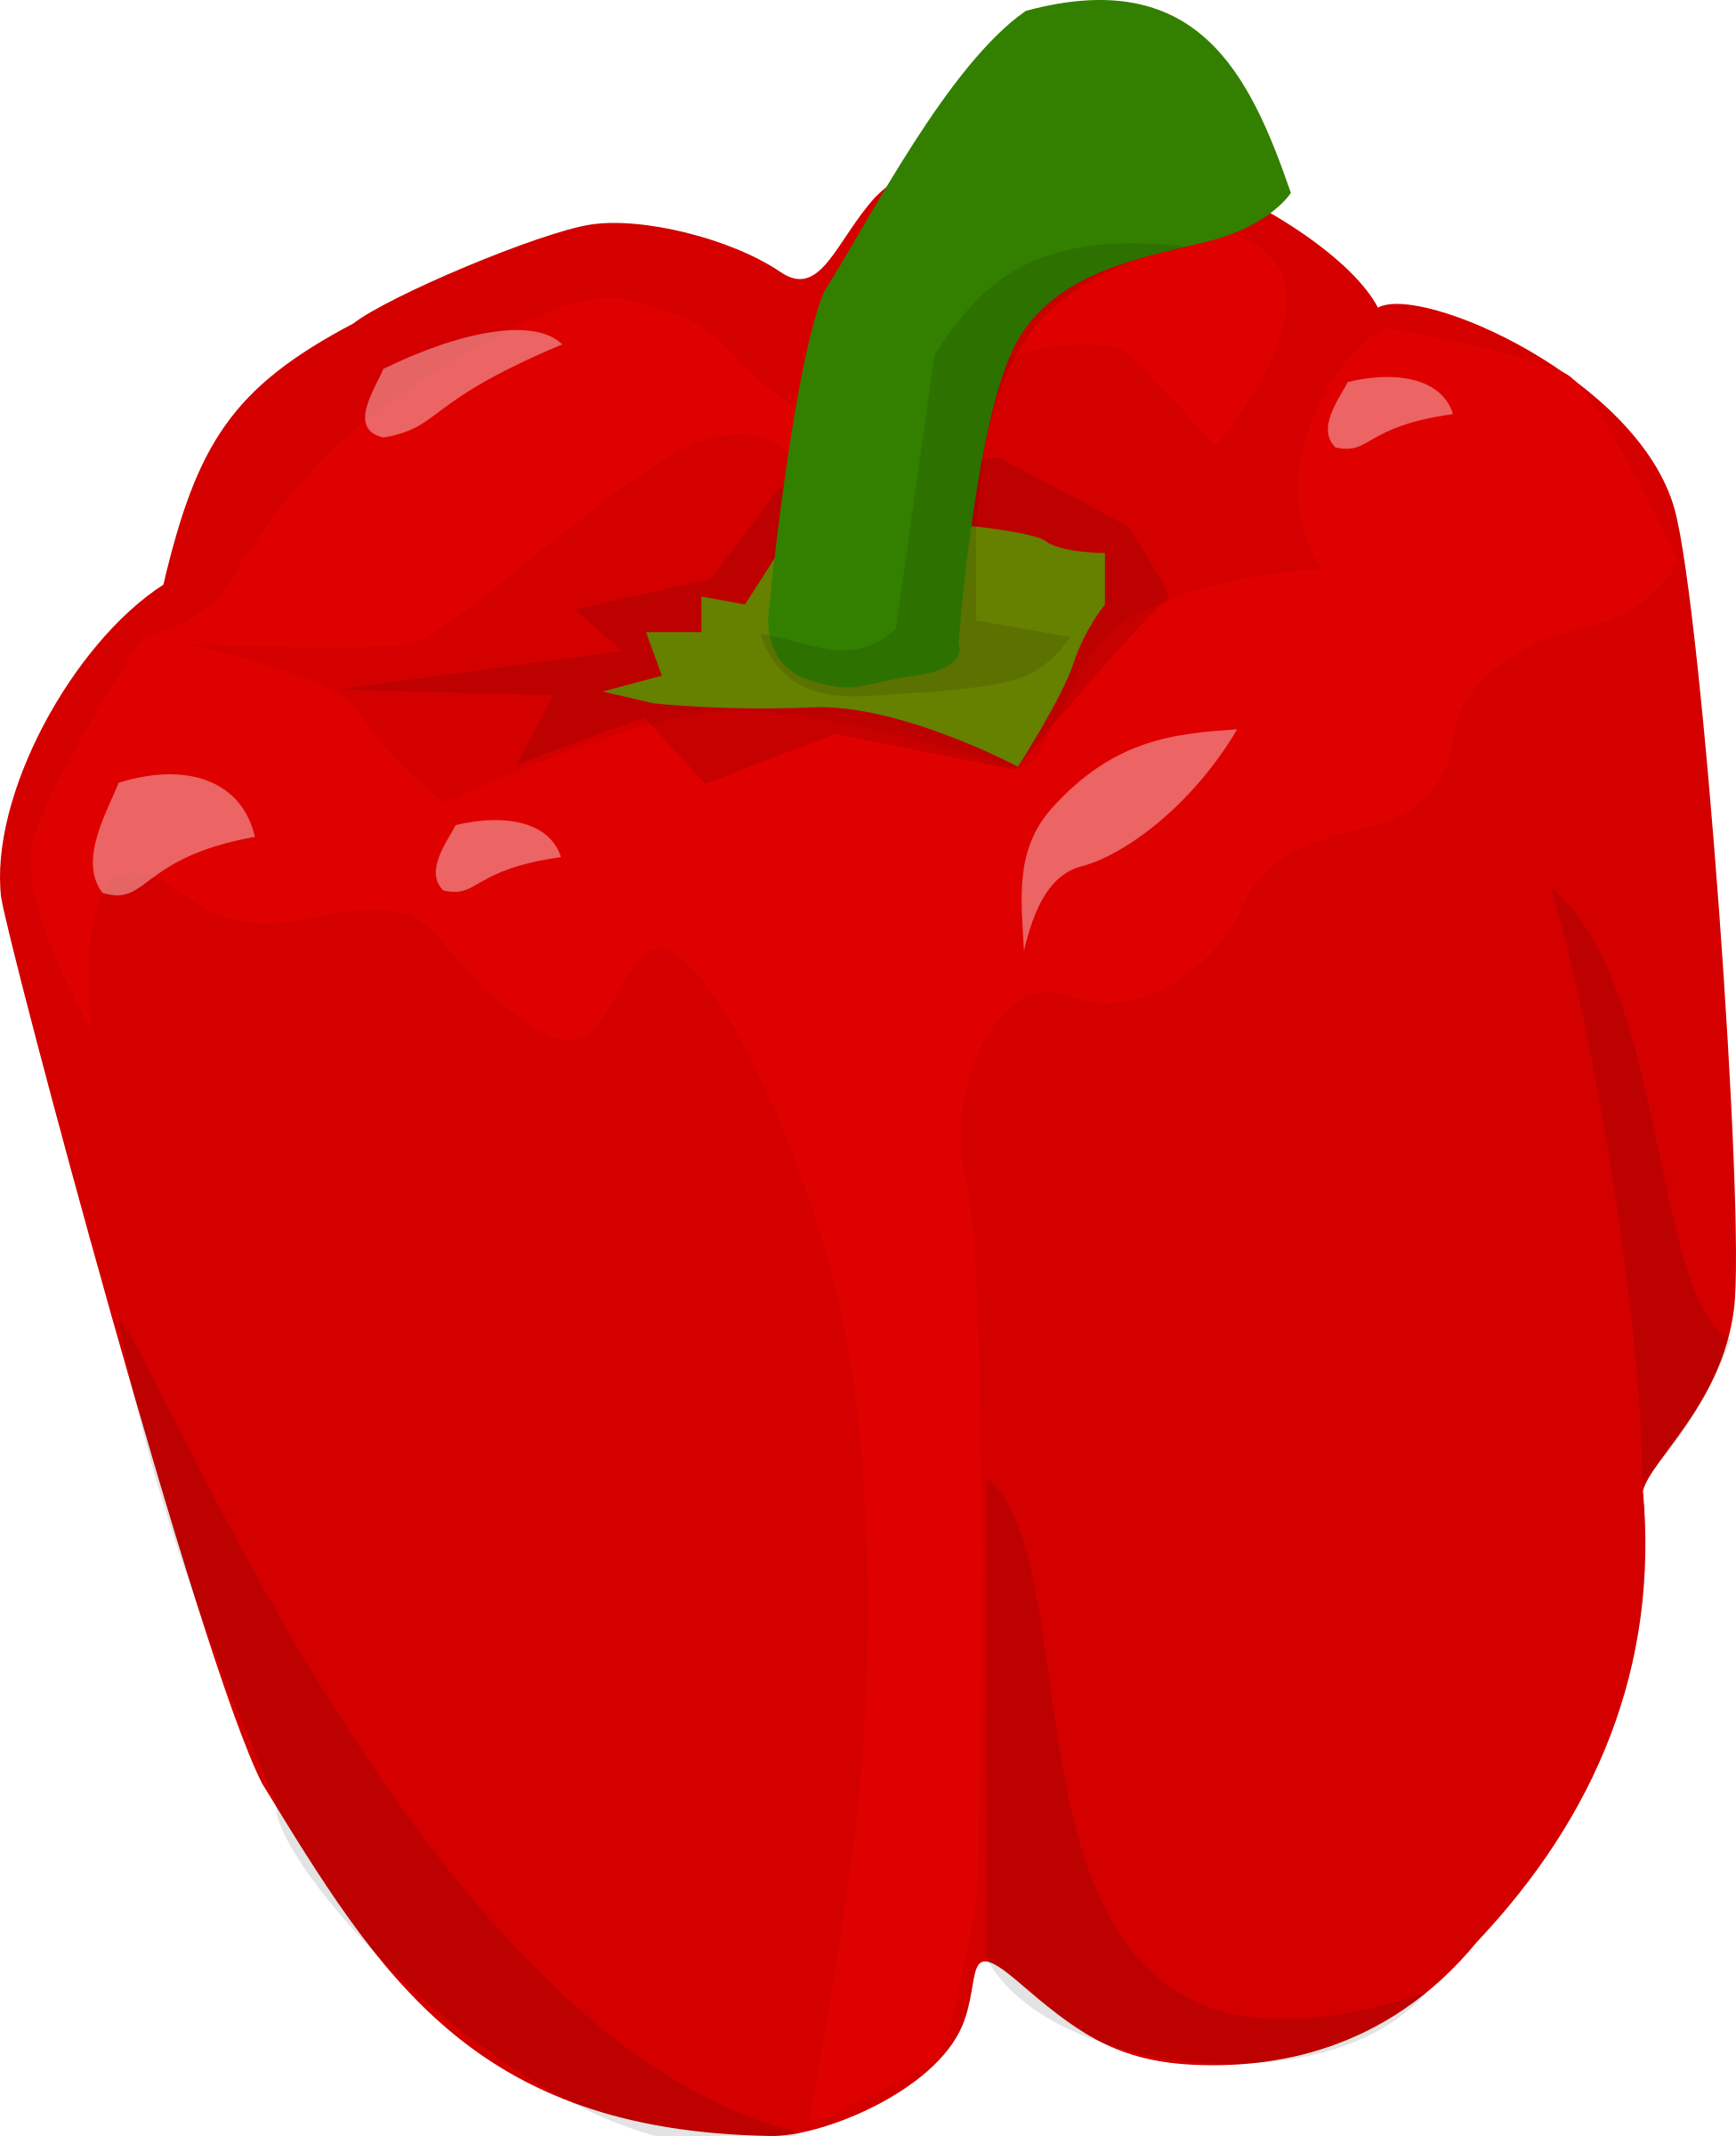 clipart bell pepper pepper clipart images pepper clipart black and white